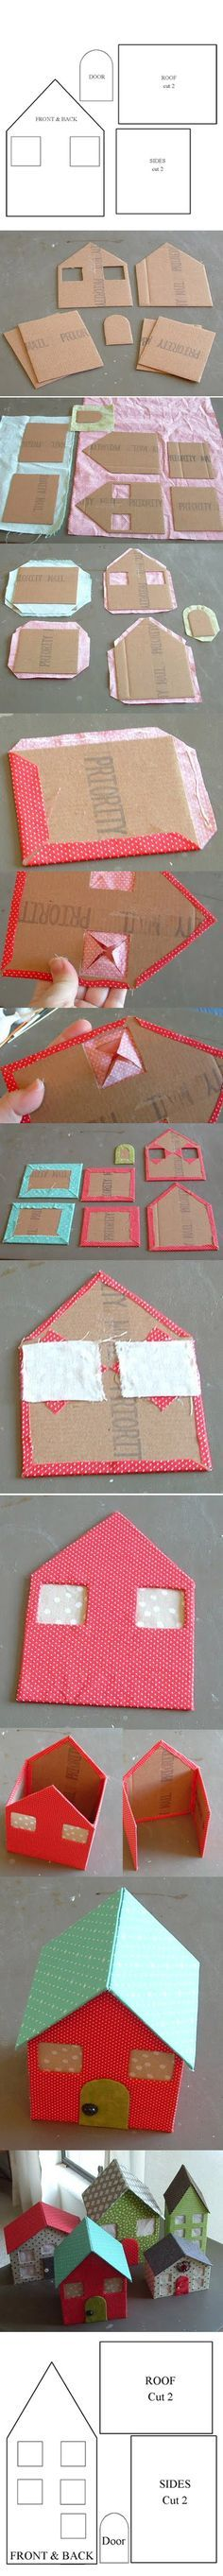 Divertidas casitas de cartón. Fascinating. Think I would use chip boards rather than cardboard if I was going to this much effort ..... Extra strength.